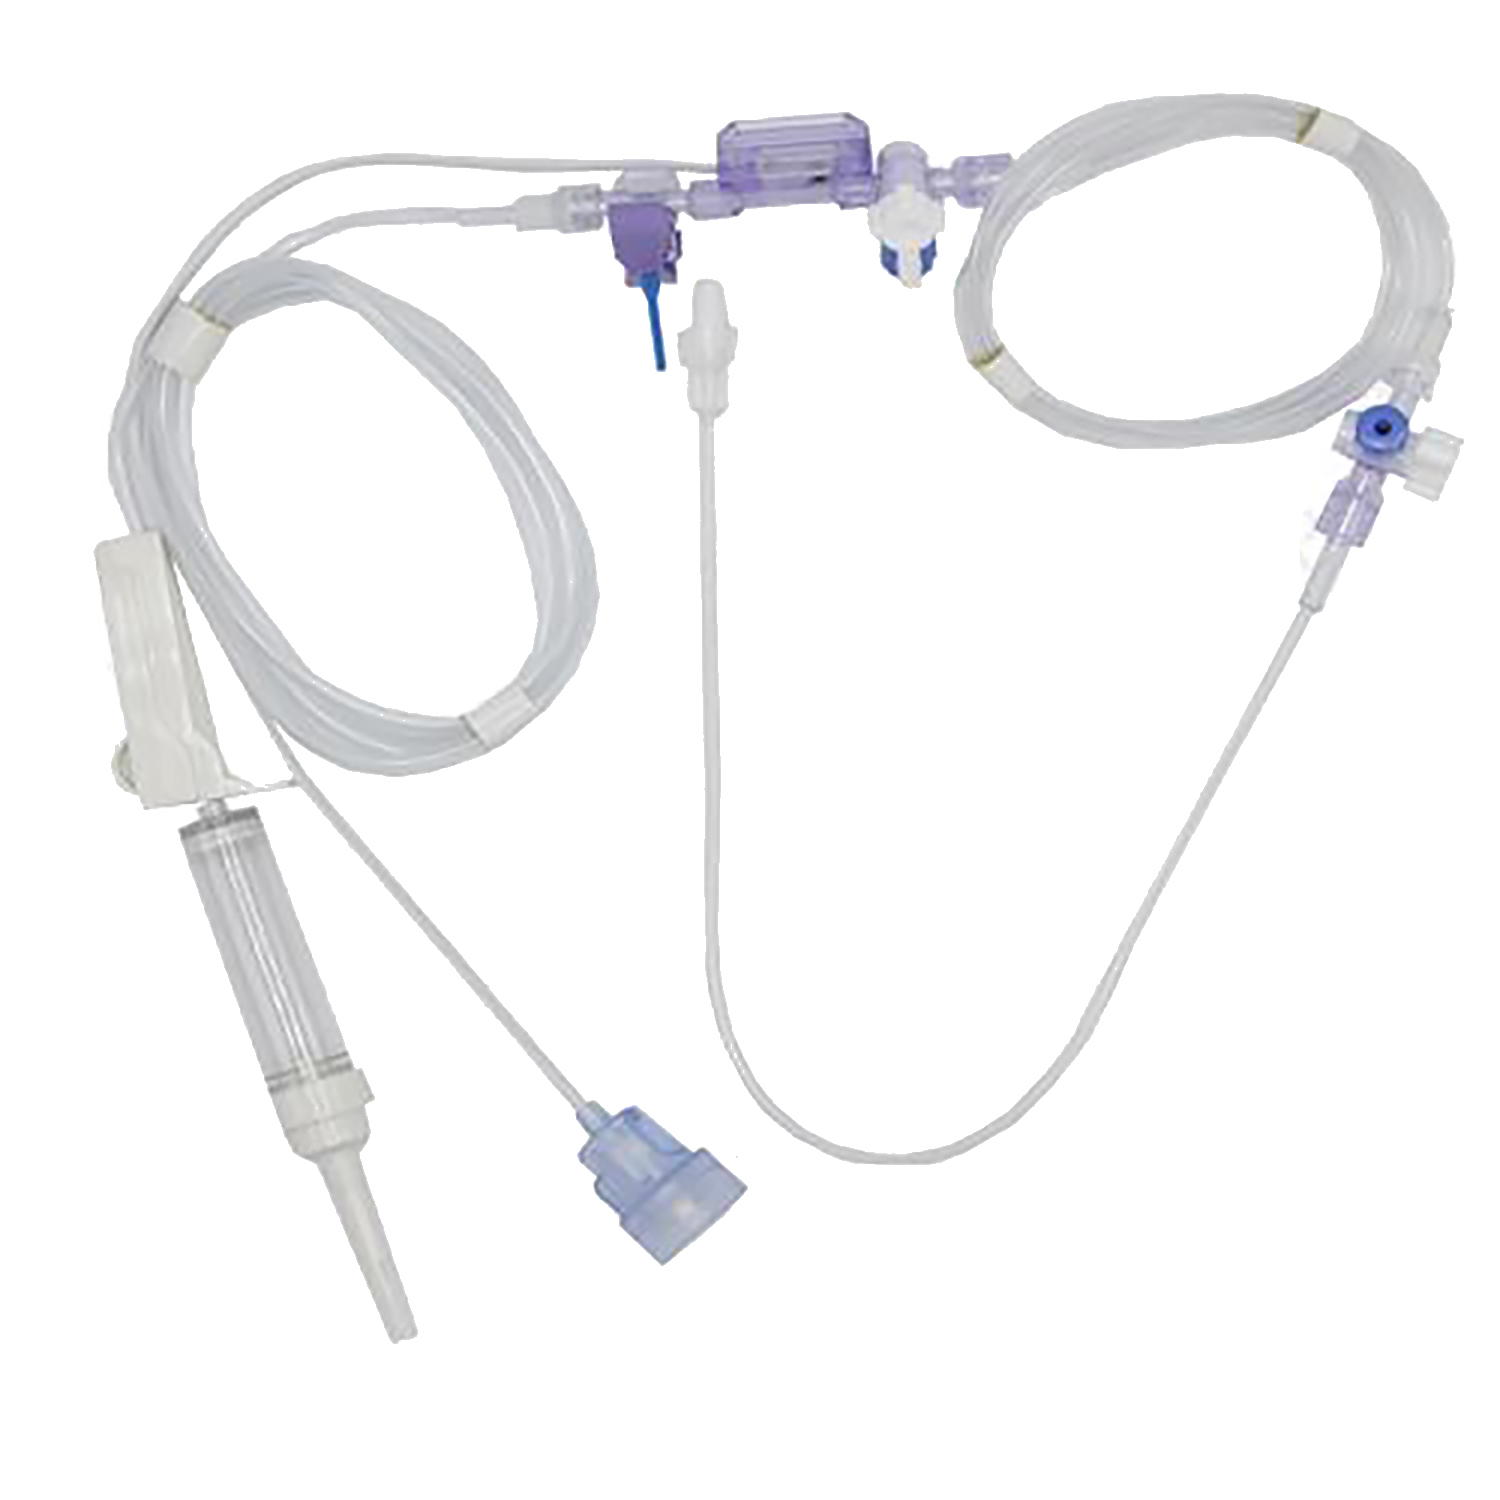 Standard IBP Disposable Transducer for Waveline Touch, EZ, and Pro